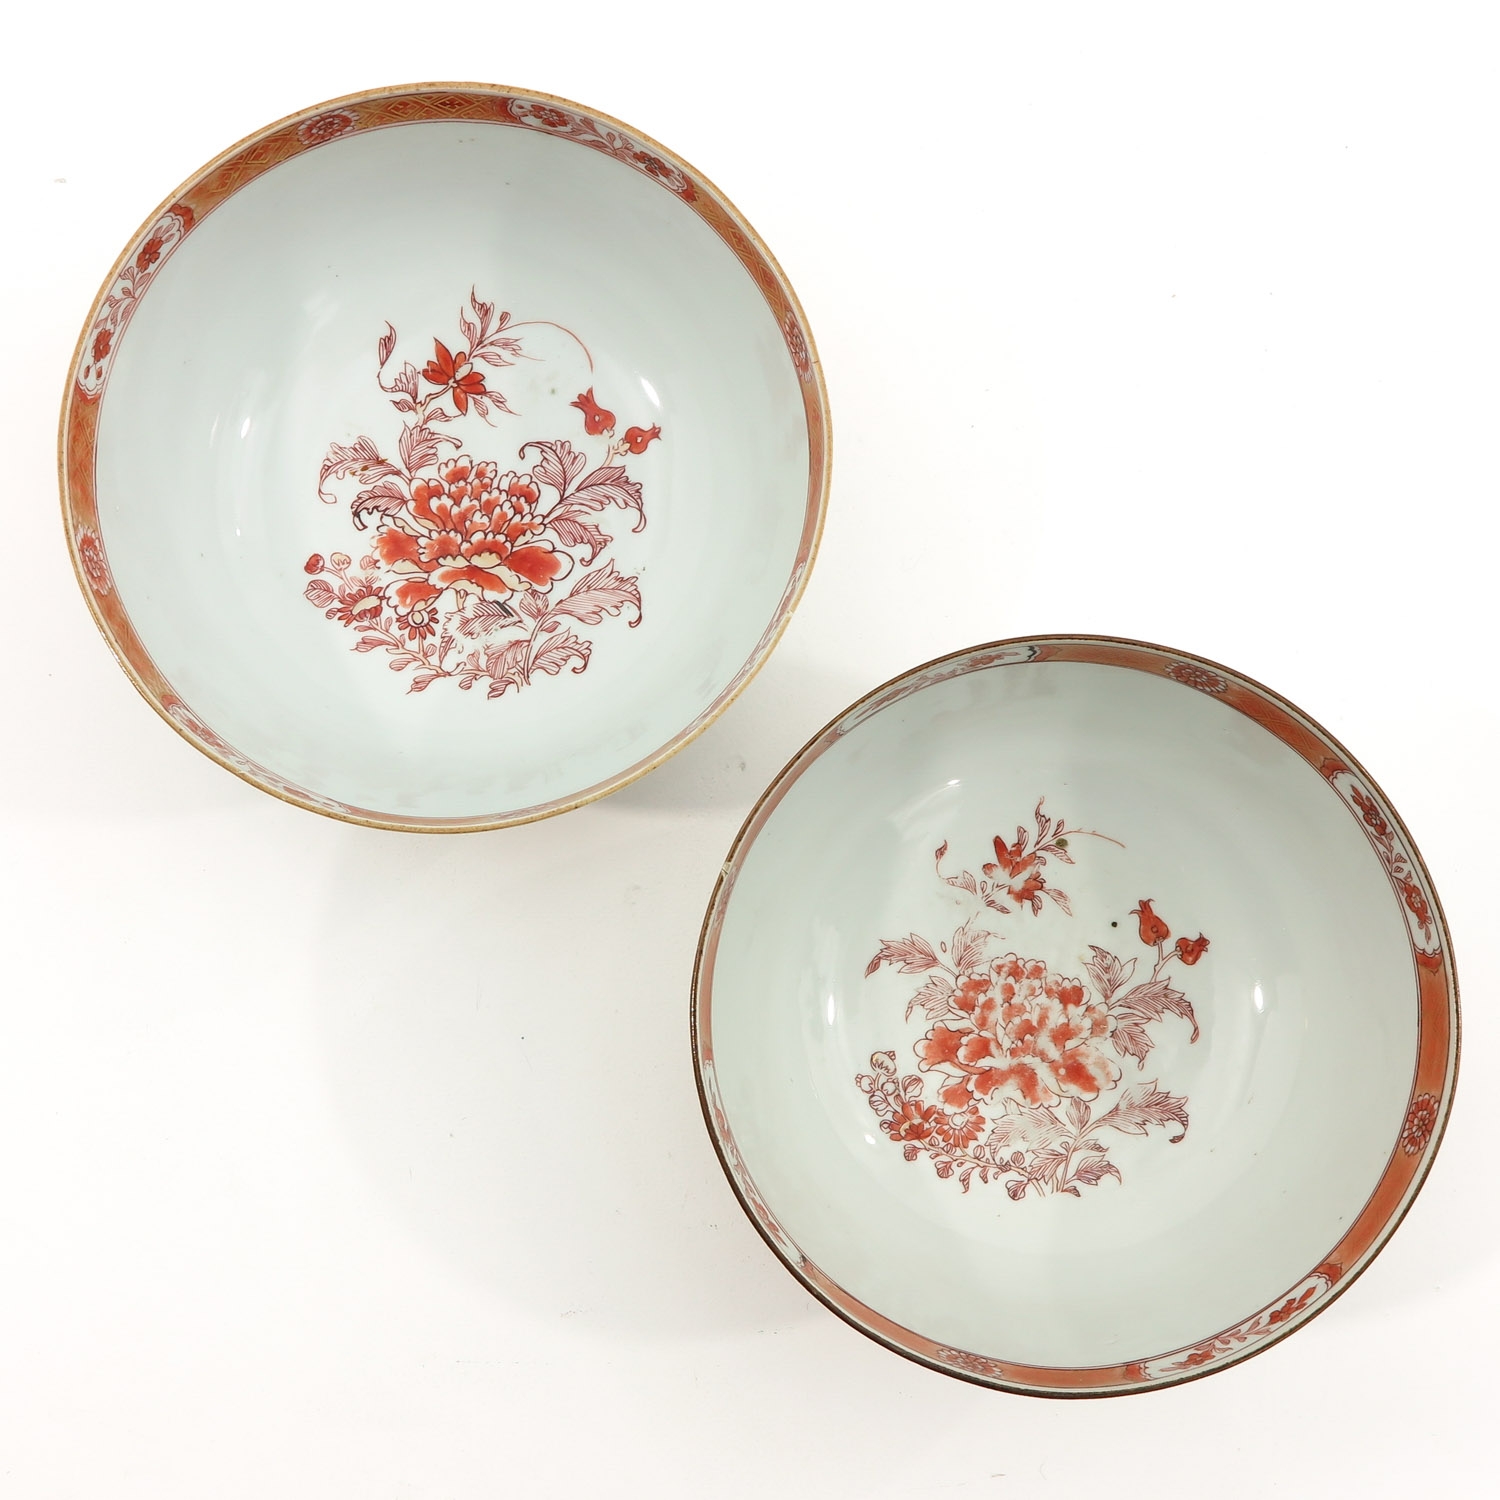 A Pair of Milk and Blood Decor Bowls - Image 5 of 9